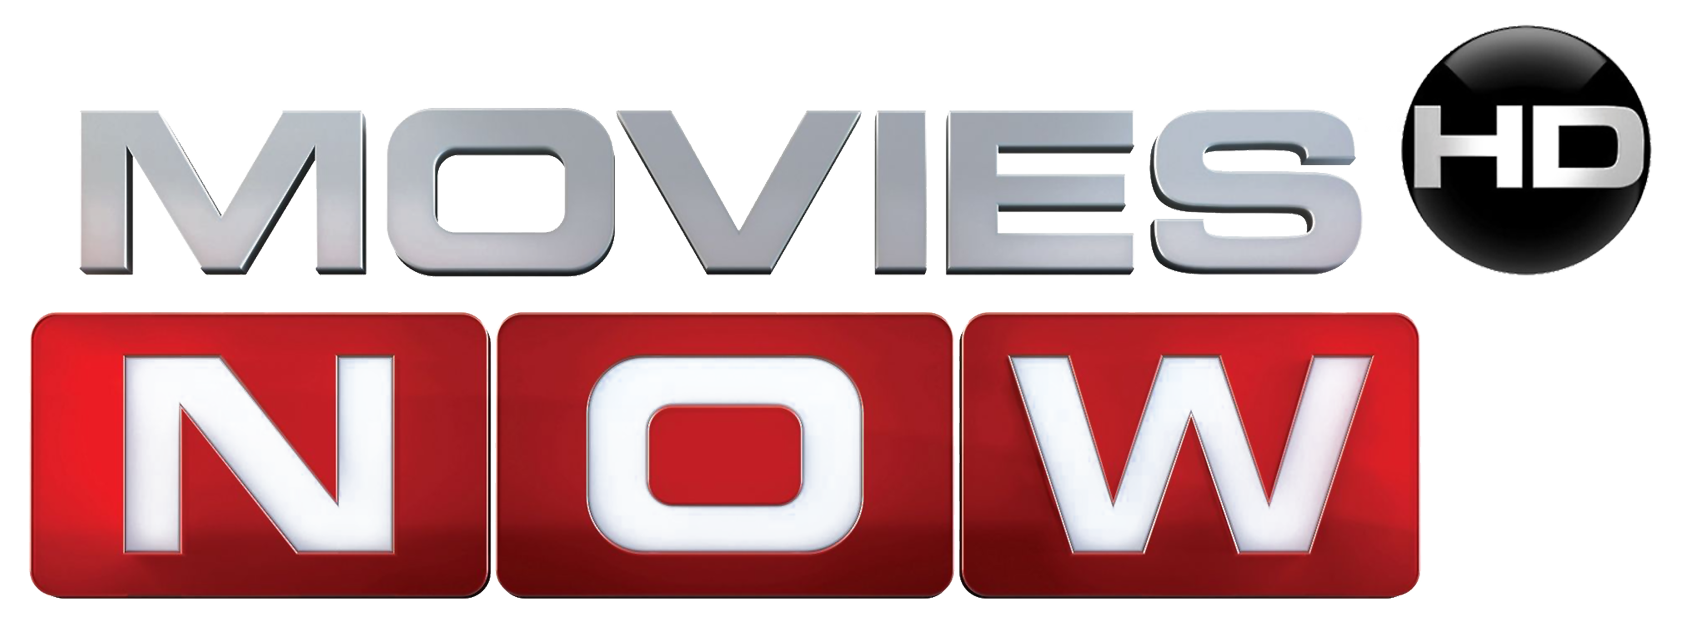 Movie text png. Hd transparent images pluspng